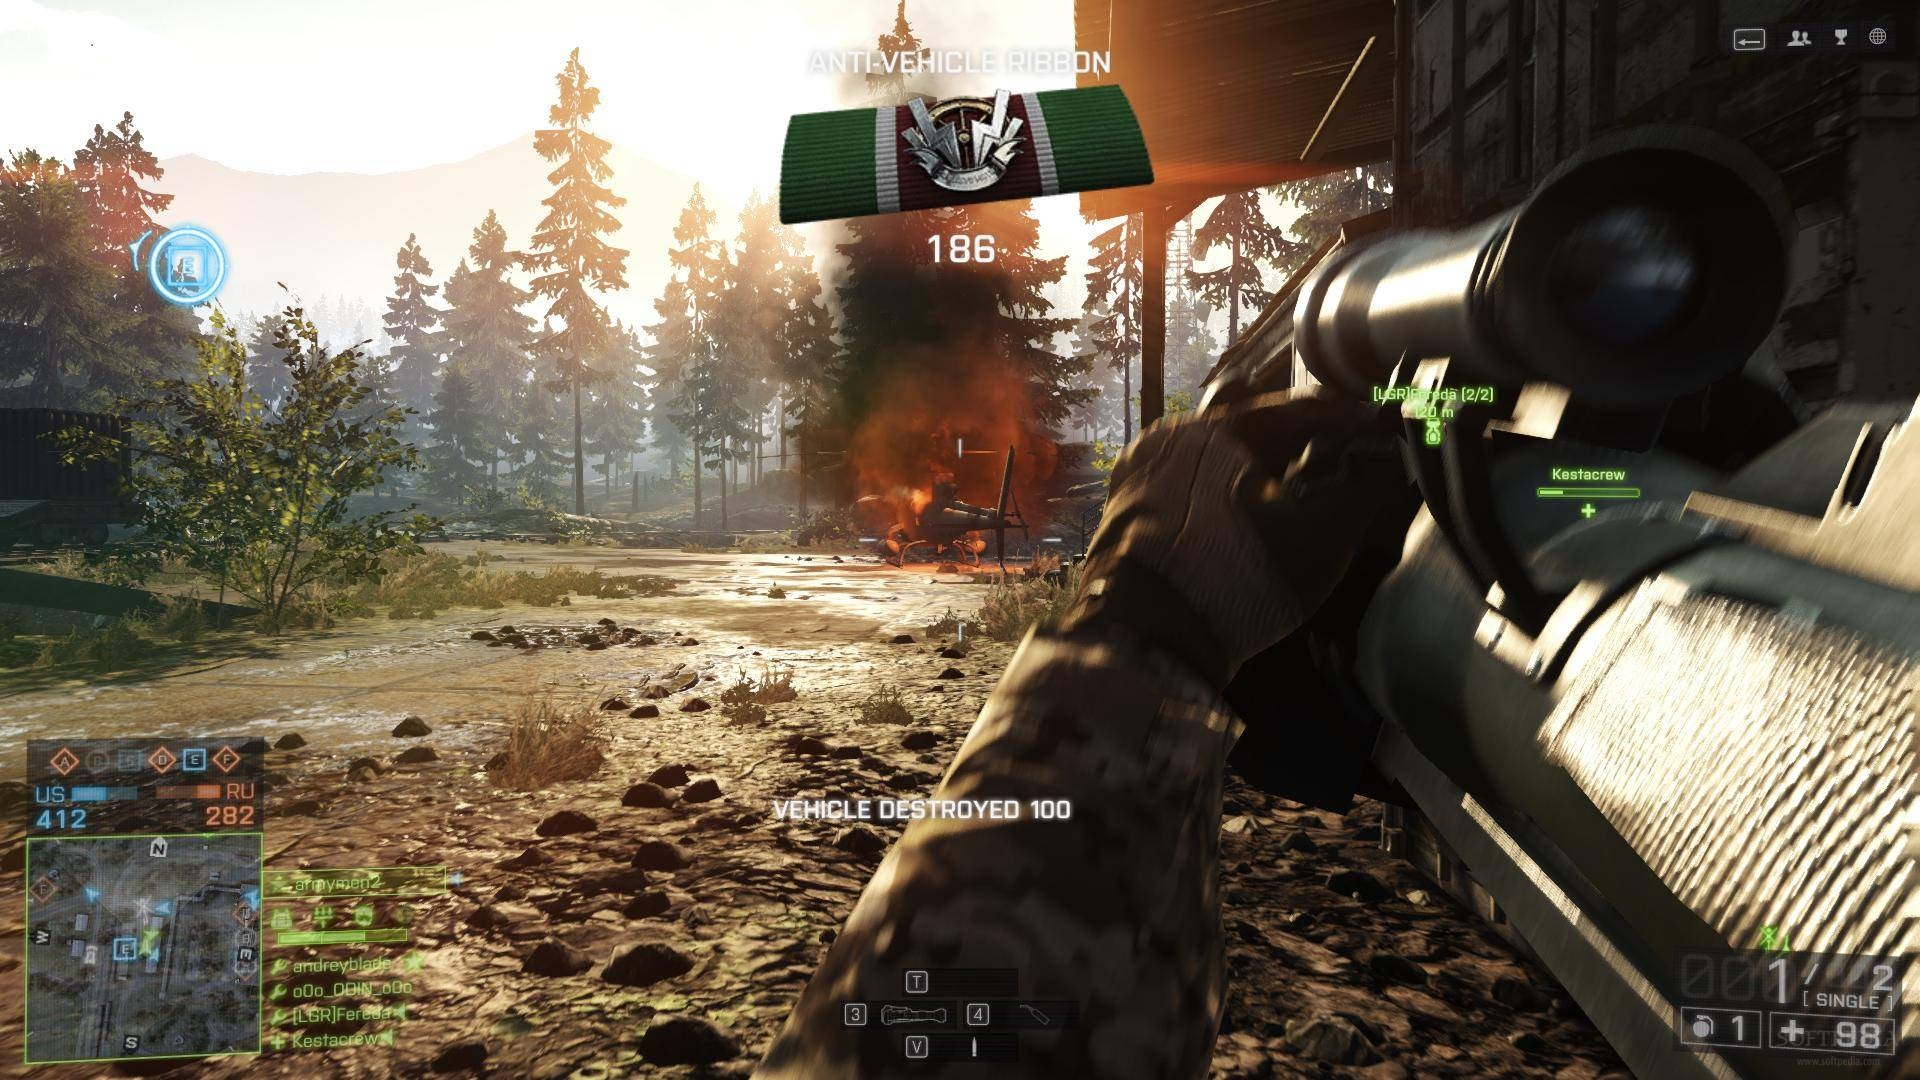 Download Now Battlefield 4 Updates on PS4 and PS3 to Fix Many Issues